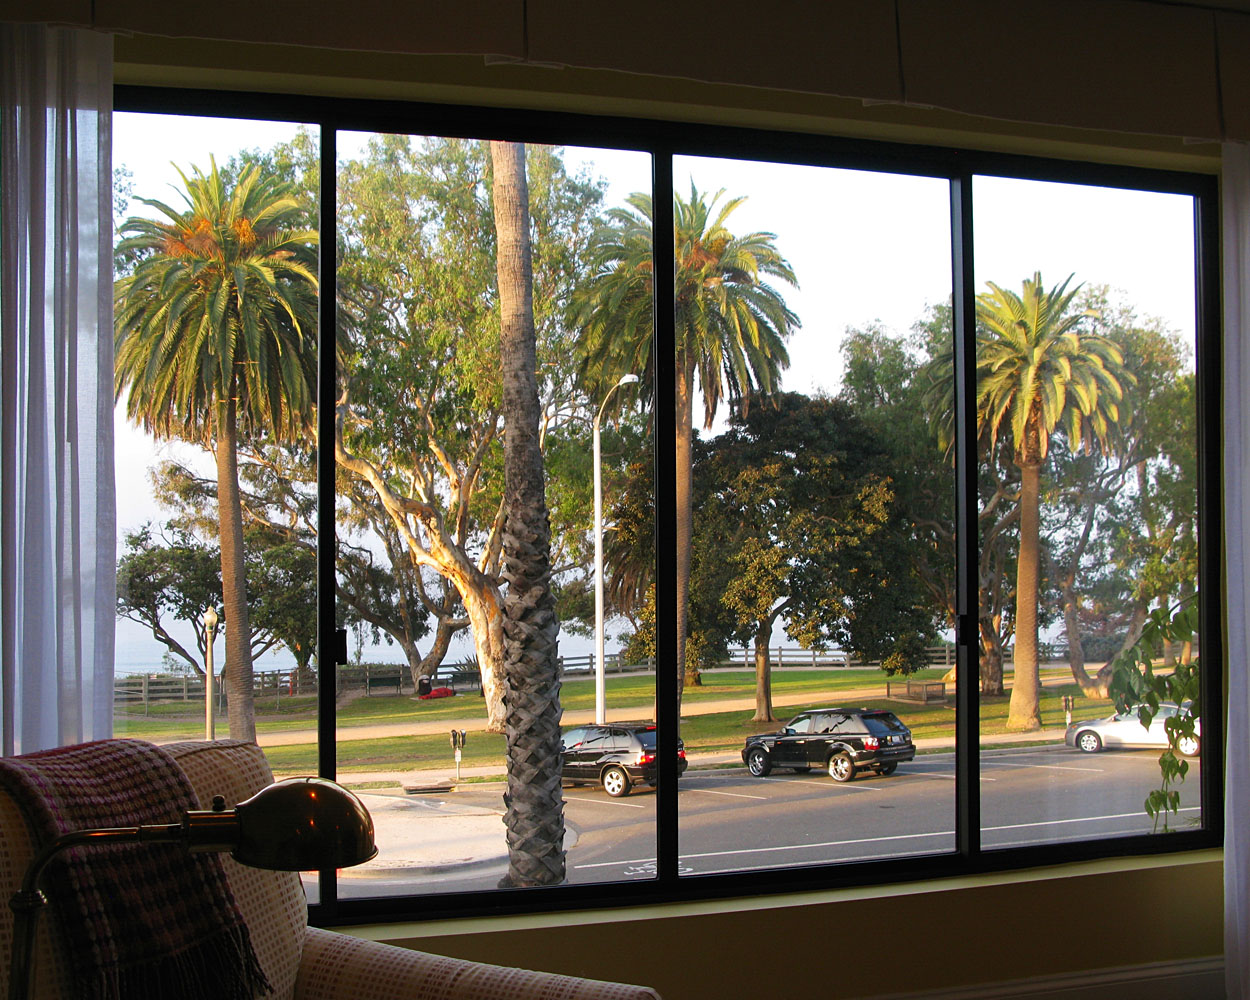 Stan's View of the Pacific Ocean at the Oceana from his Living Room in Santa Monica, California